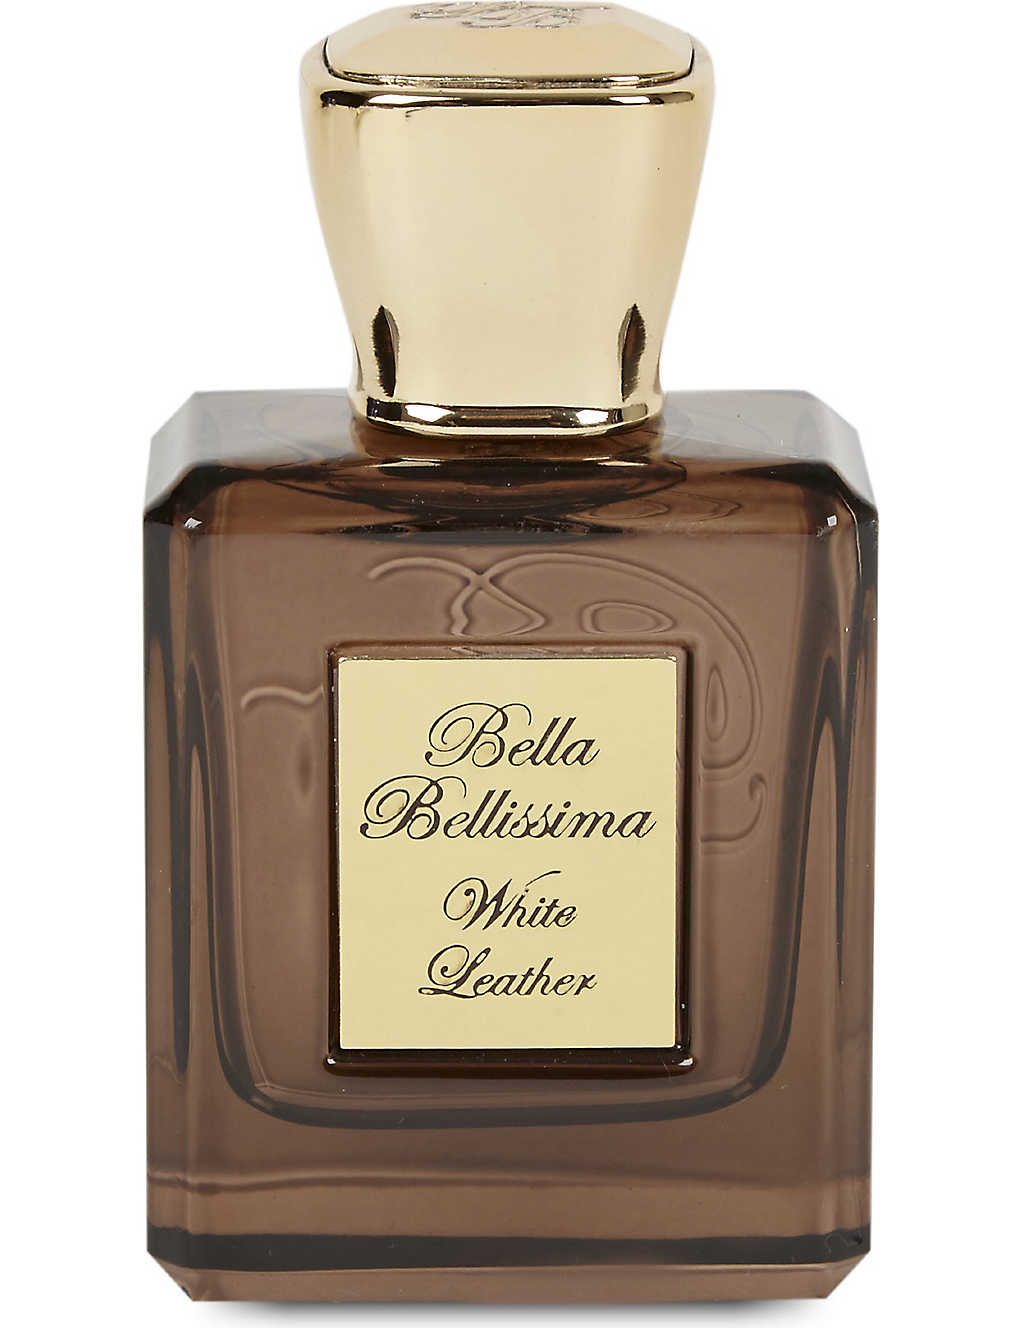 Bella Bellissima White Leather Parfum 50ml Selfridgescom